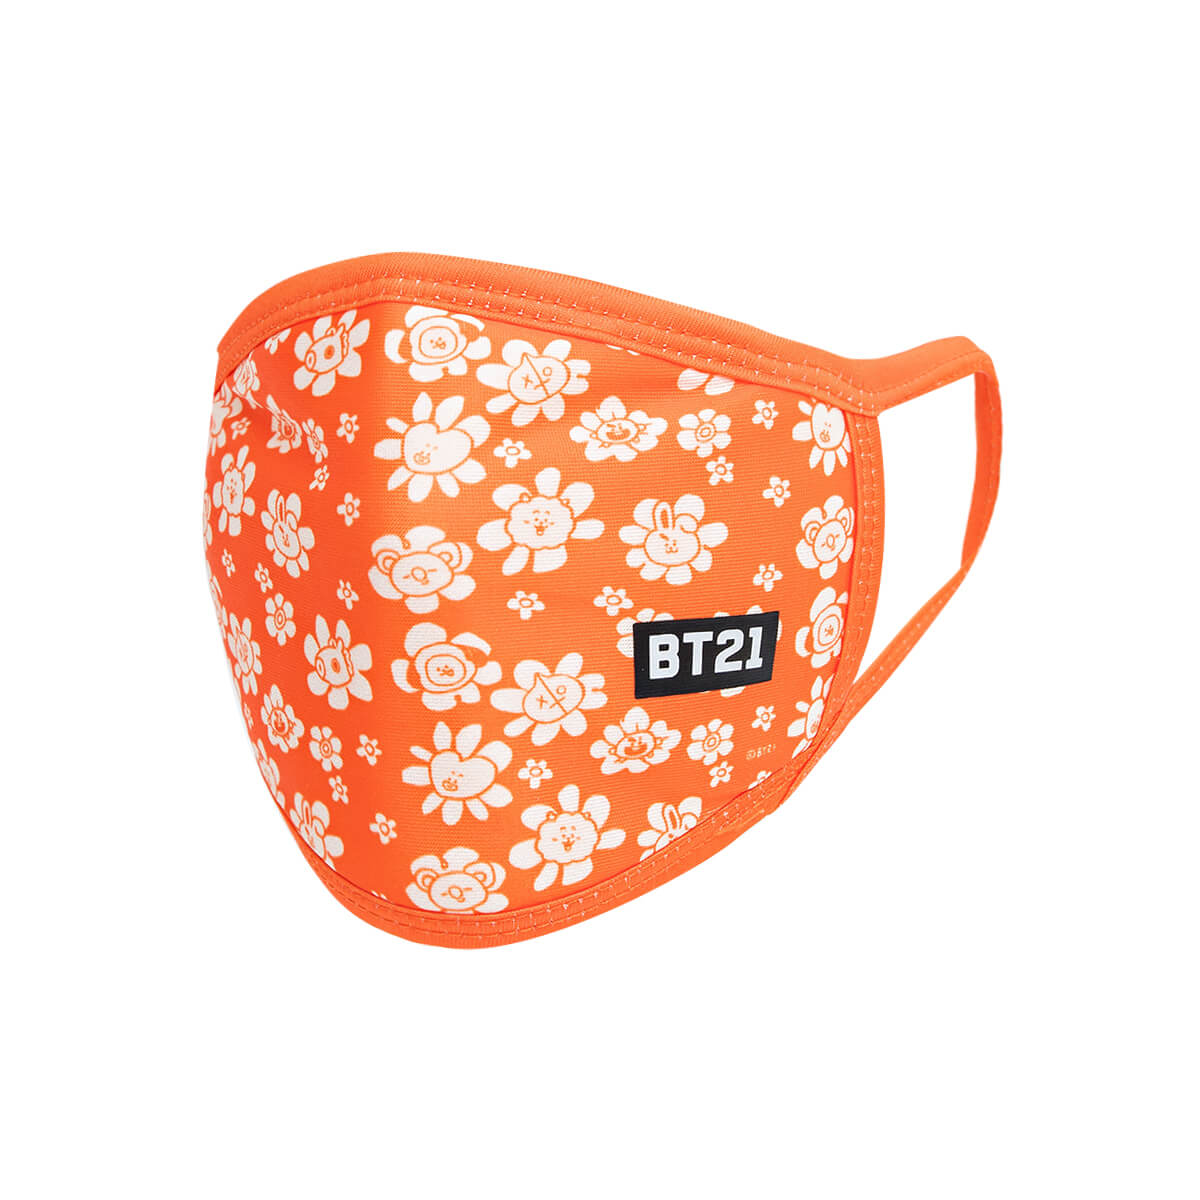 BT21 FLOWER Fashion Mask - Orange